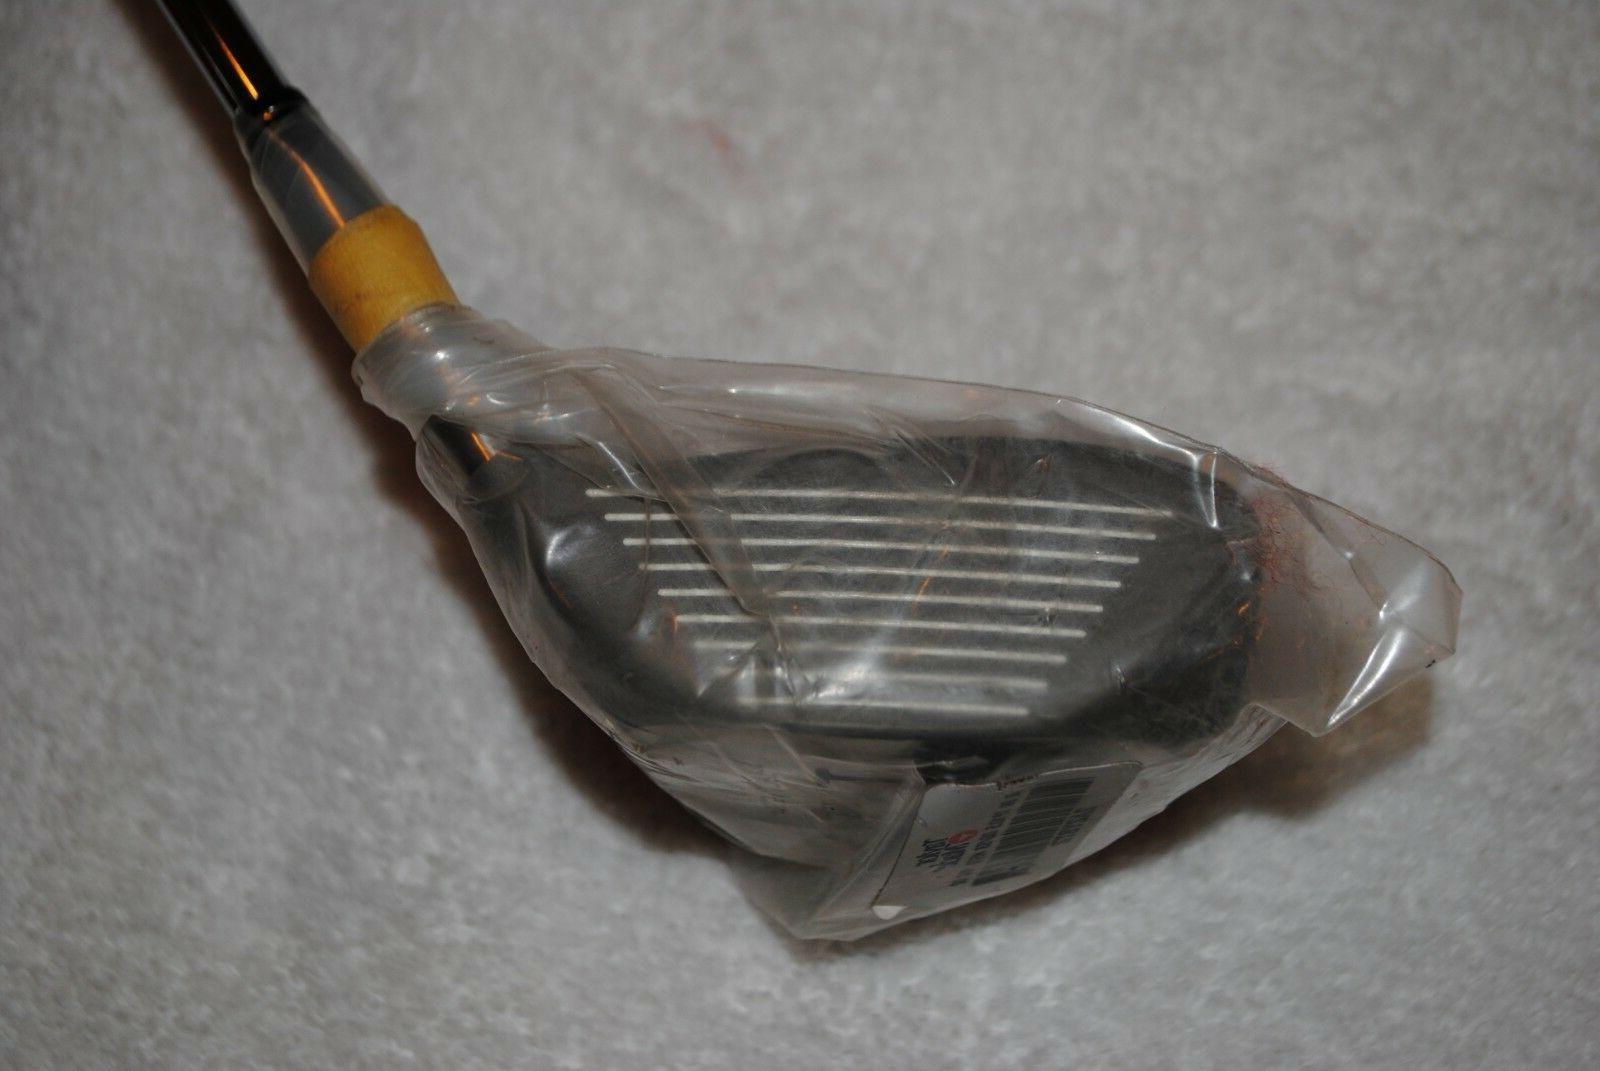 Taylor Made Driver + Matching Headcover - 10.5 Degree New Condition